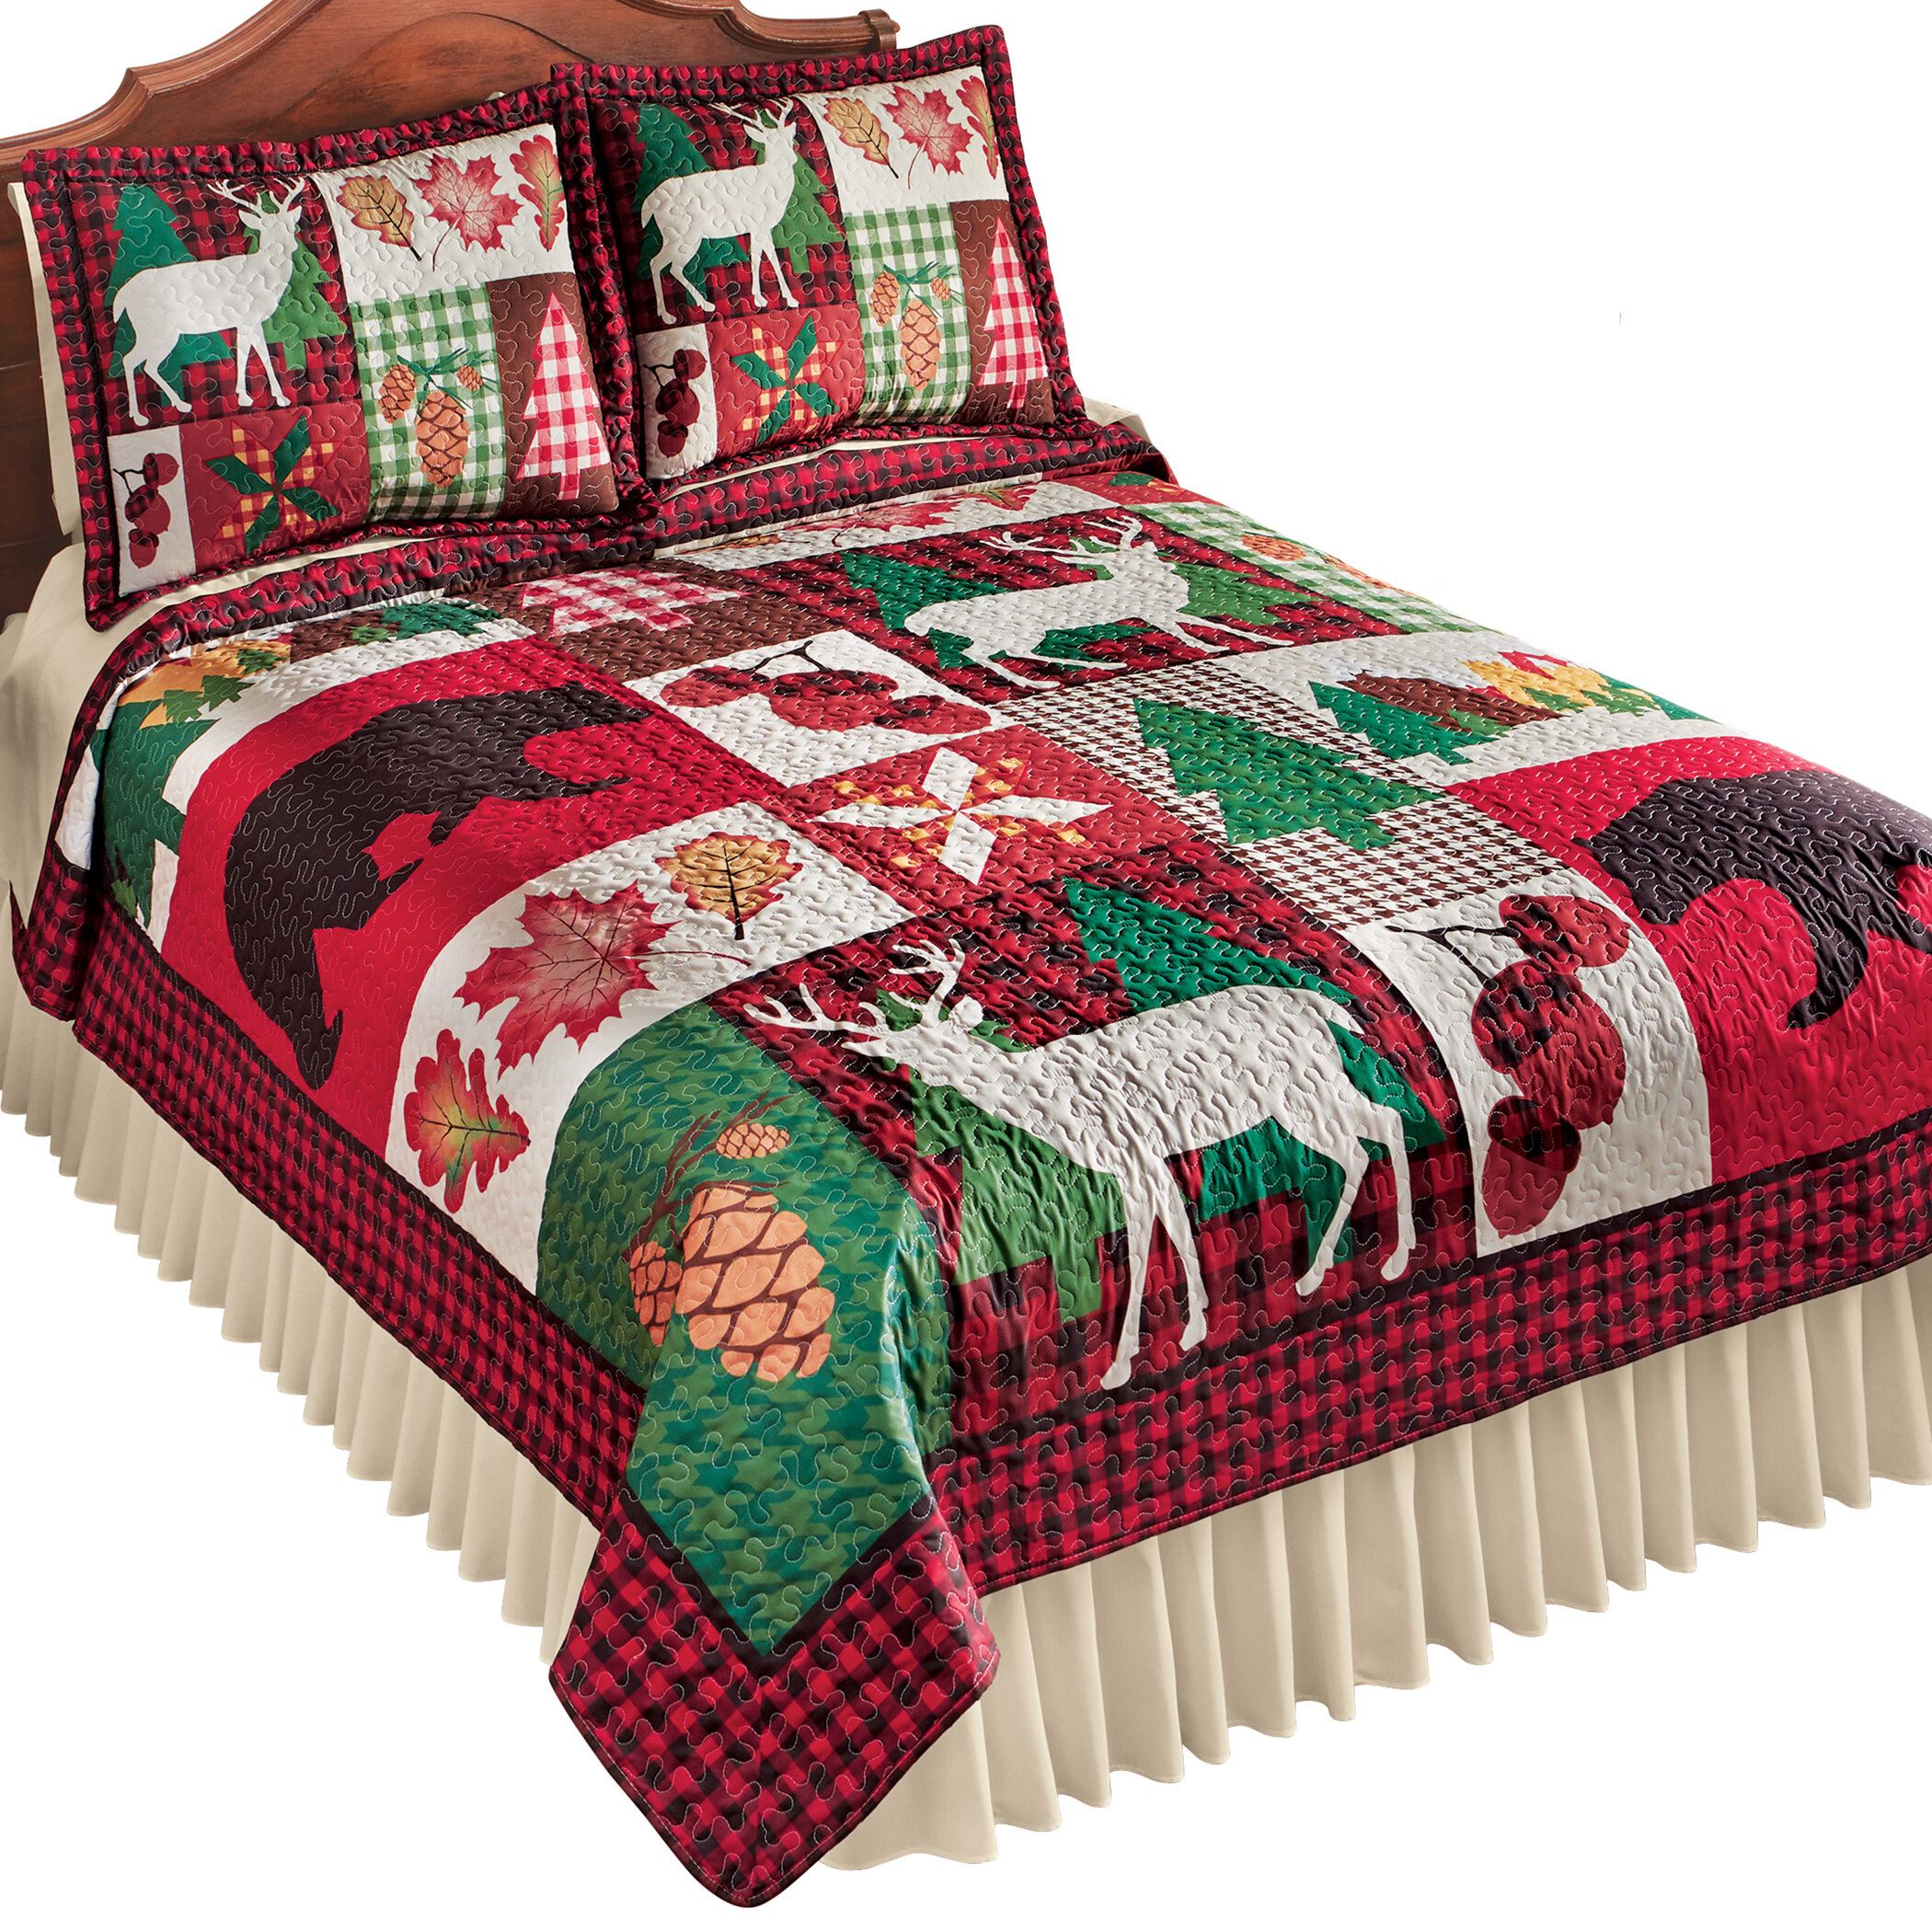 Cabin Lodge White Quilts Coverlets Sets You Ll Love In 2021 Wayfair